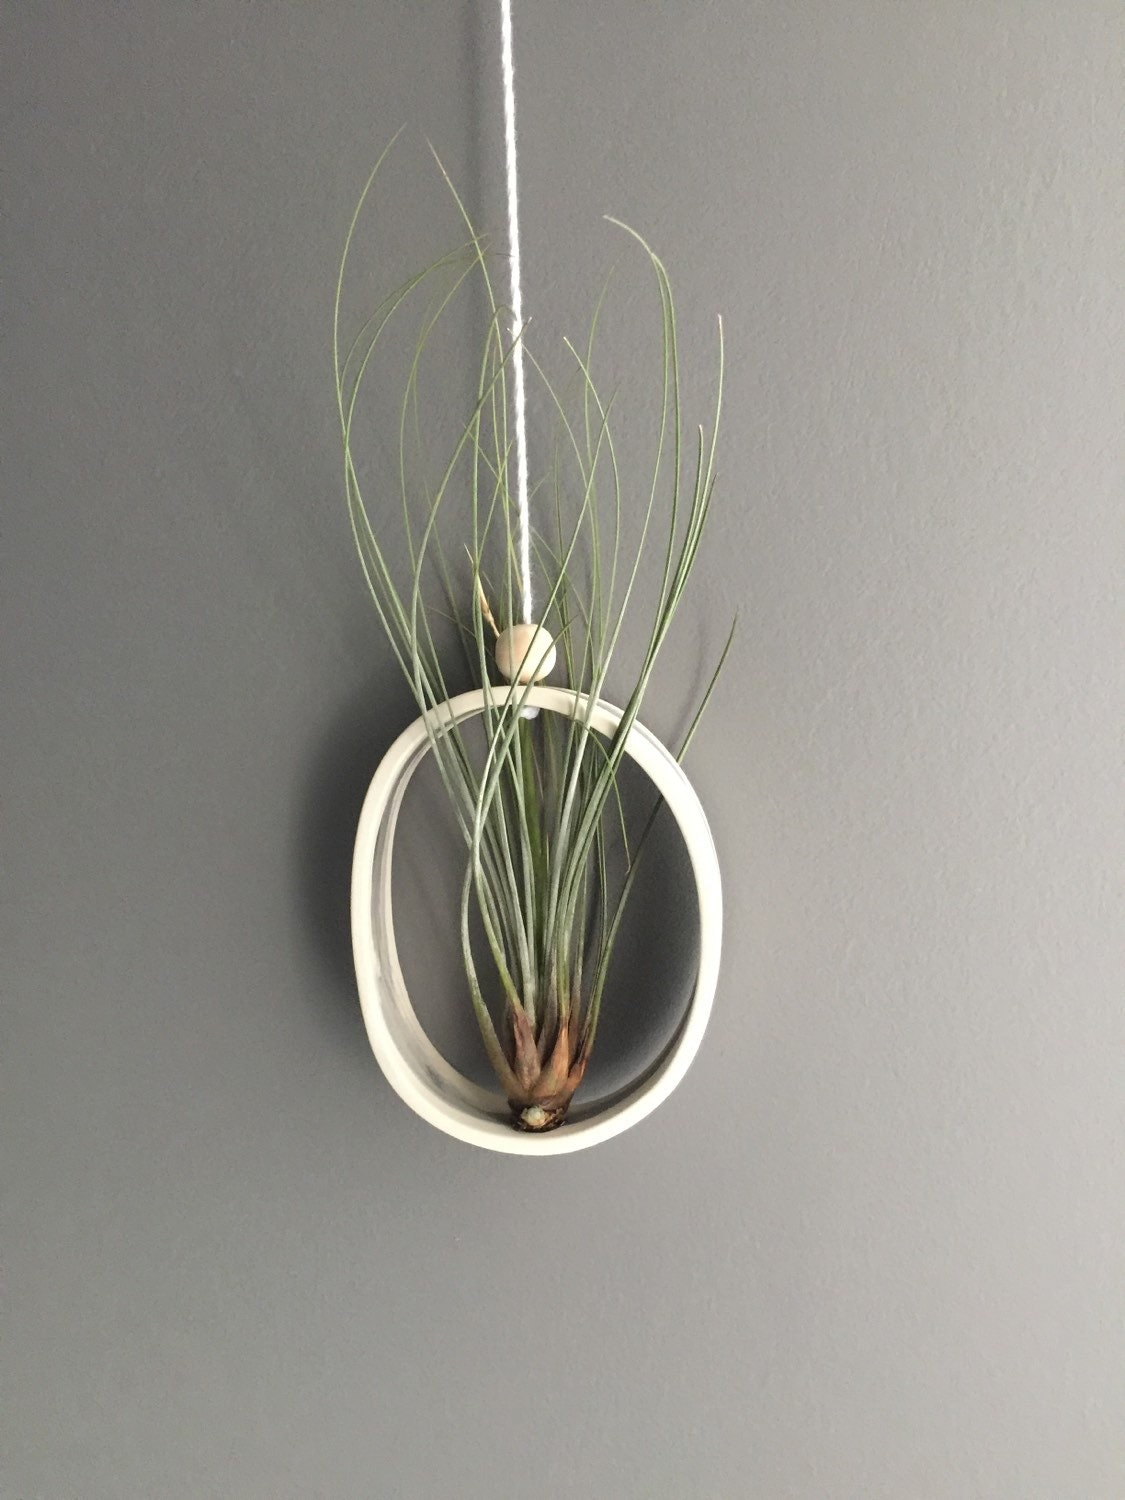 Airplant Cradle Sling Hanging Planter Display For By